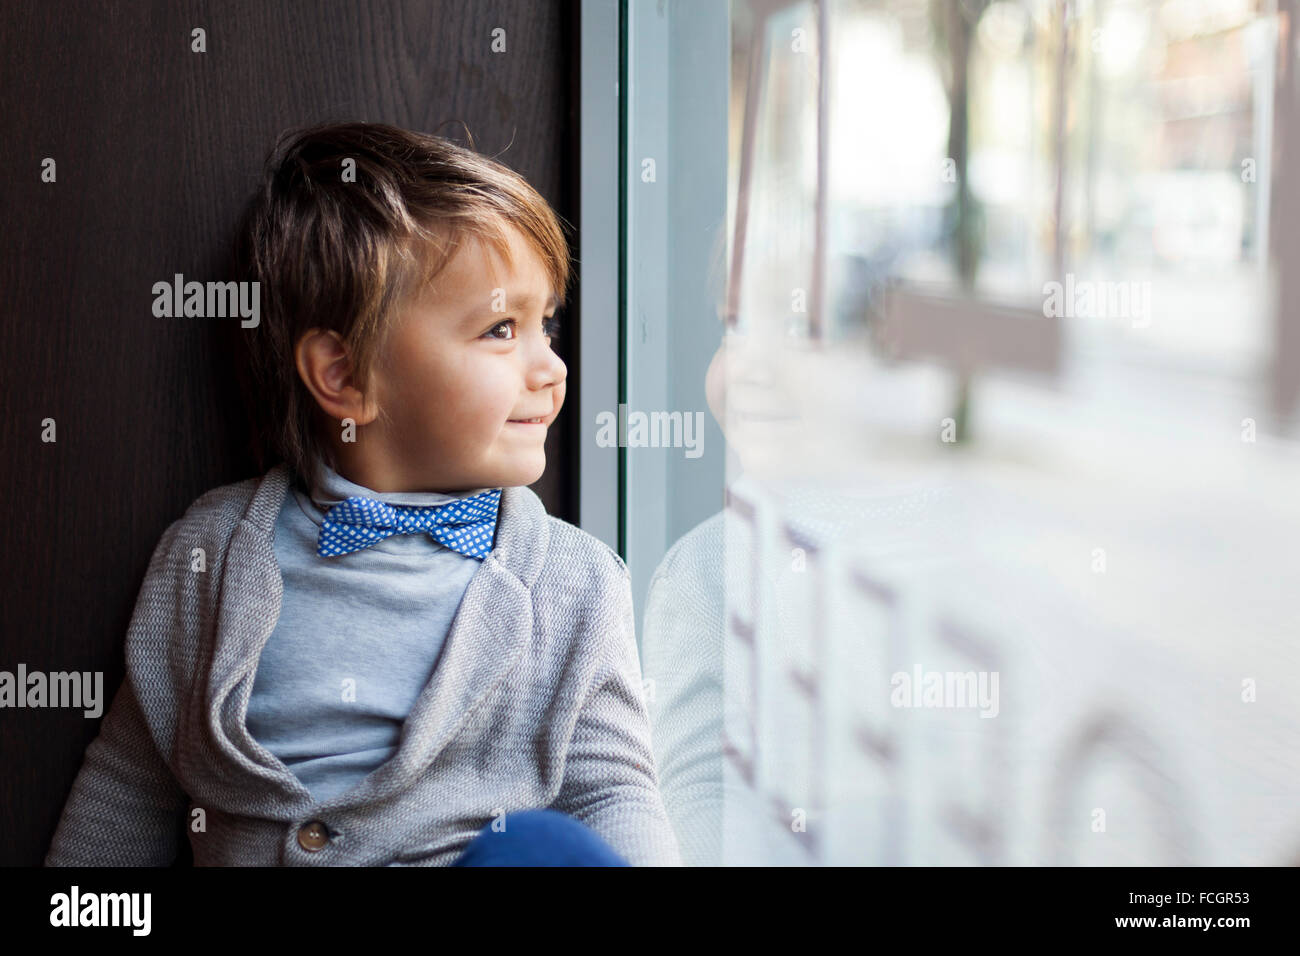 Portrait of smiling little boy   bow tie looking through window display - Stock Image